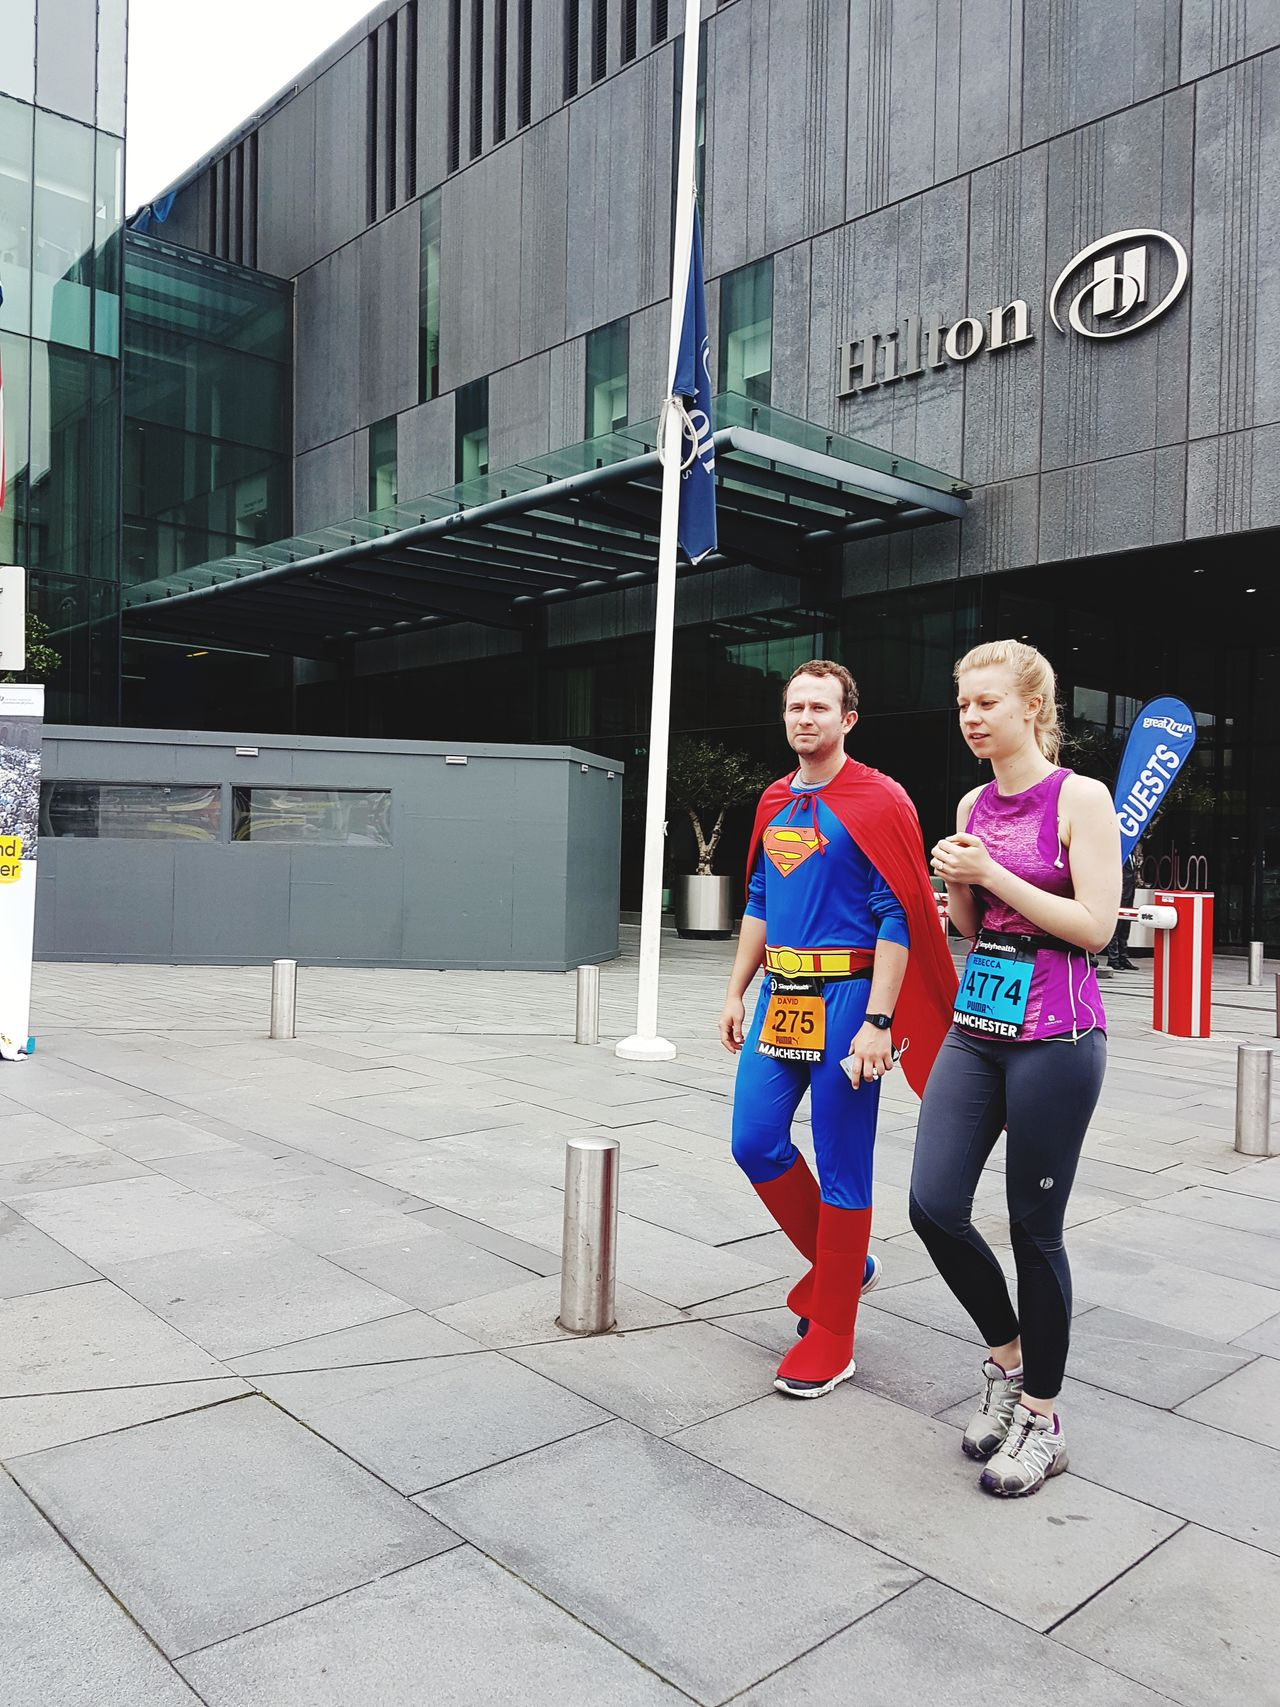 There I was, just minding my own business, when superman came along. Everyday Hero Two People Togetherness Outdoors People Full Length City Life Street Photography Carnival Crowds And Details Great North Run Charity Event Capturing The Moment Race Charity Adults Only Take It In Your Stride